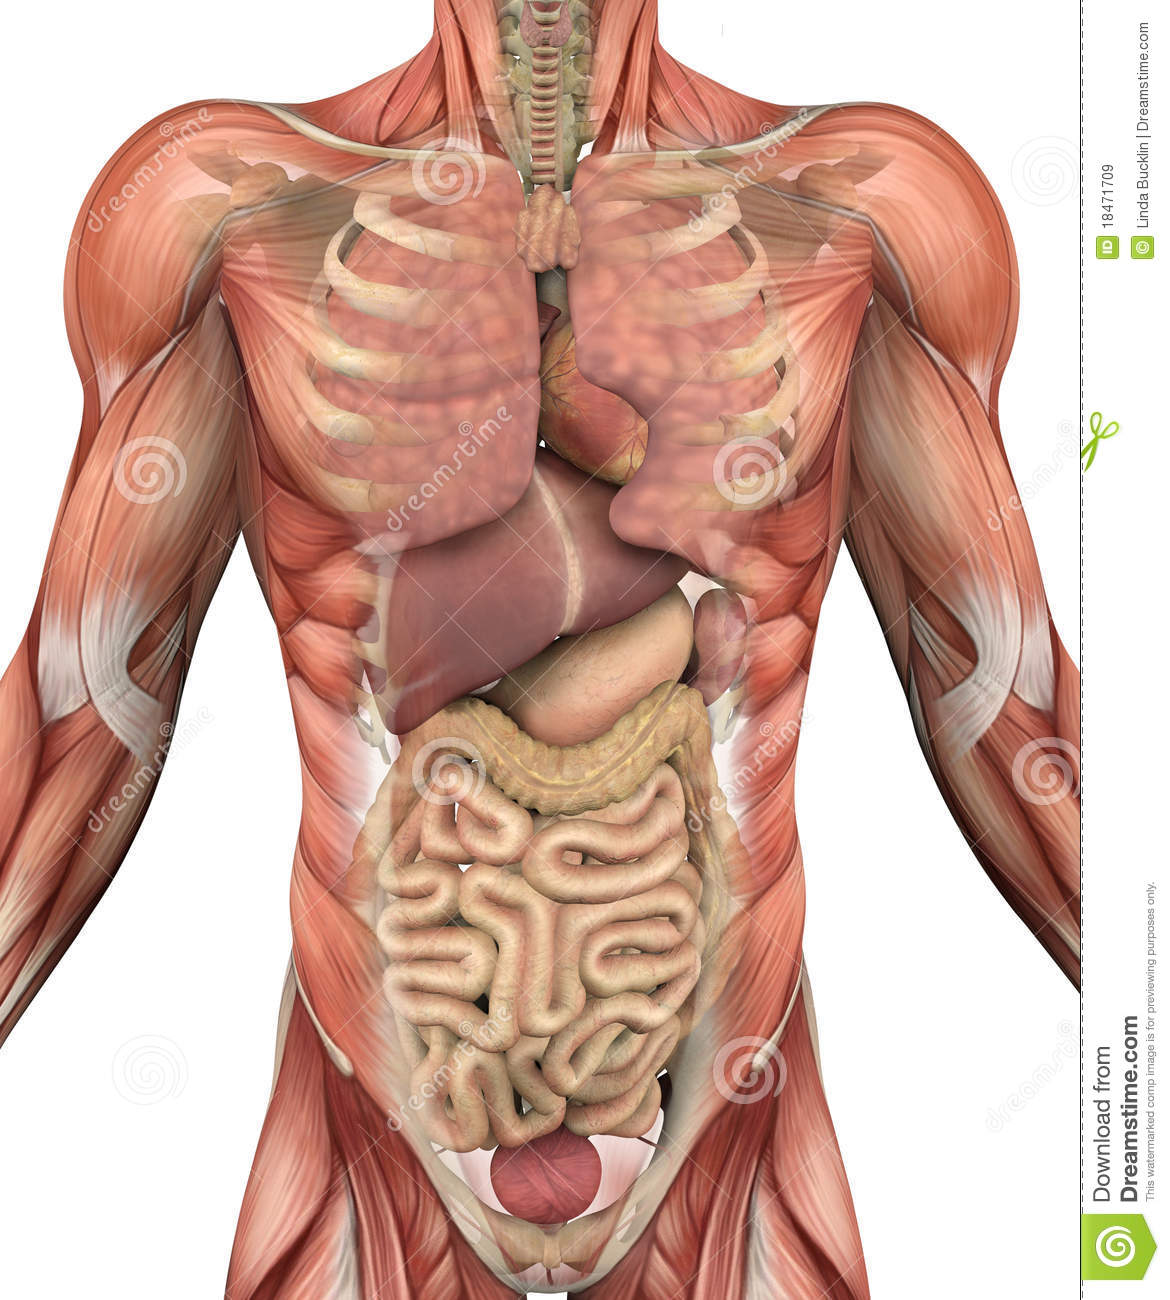 Male Torso With Muscles And Organs Stock Illustration - Illustration ...